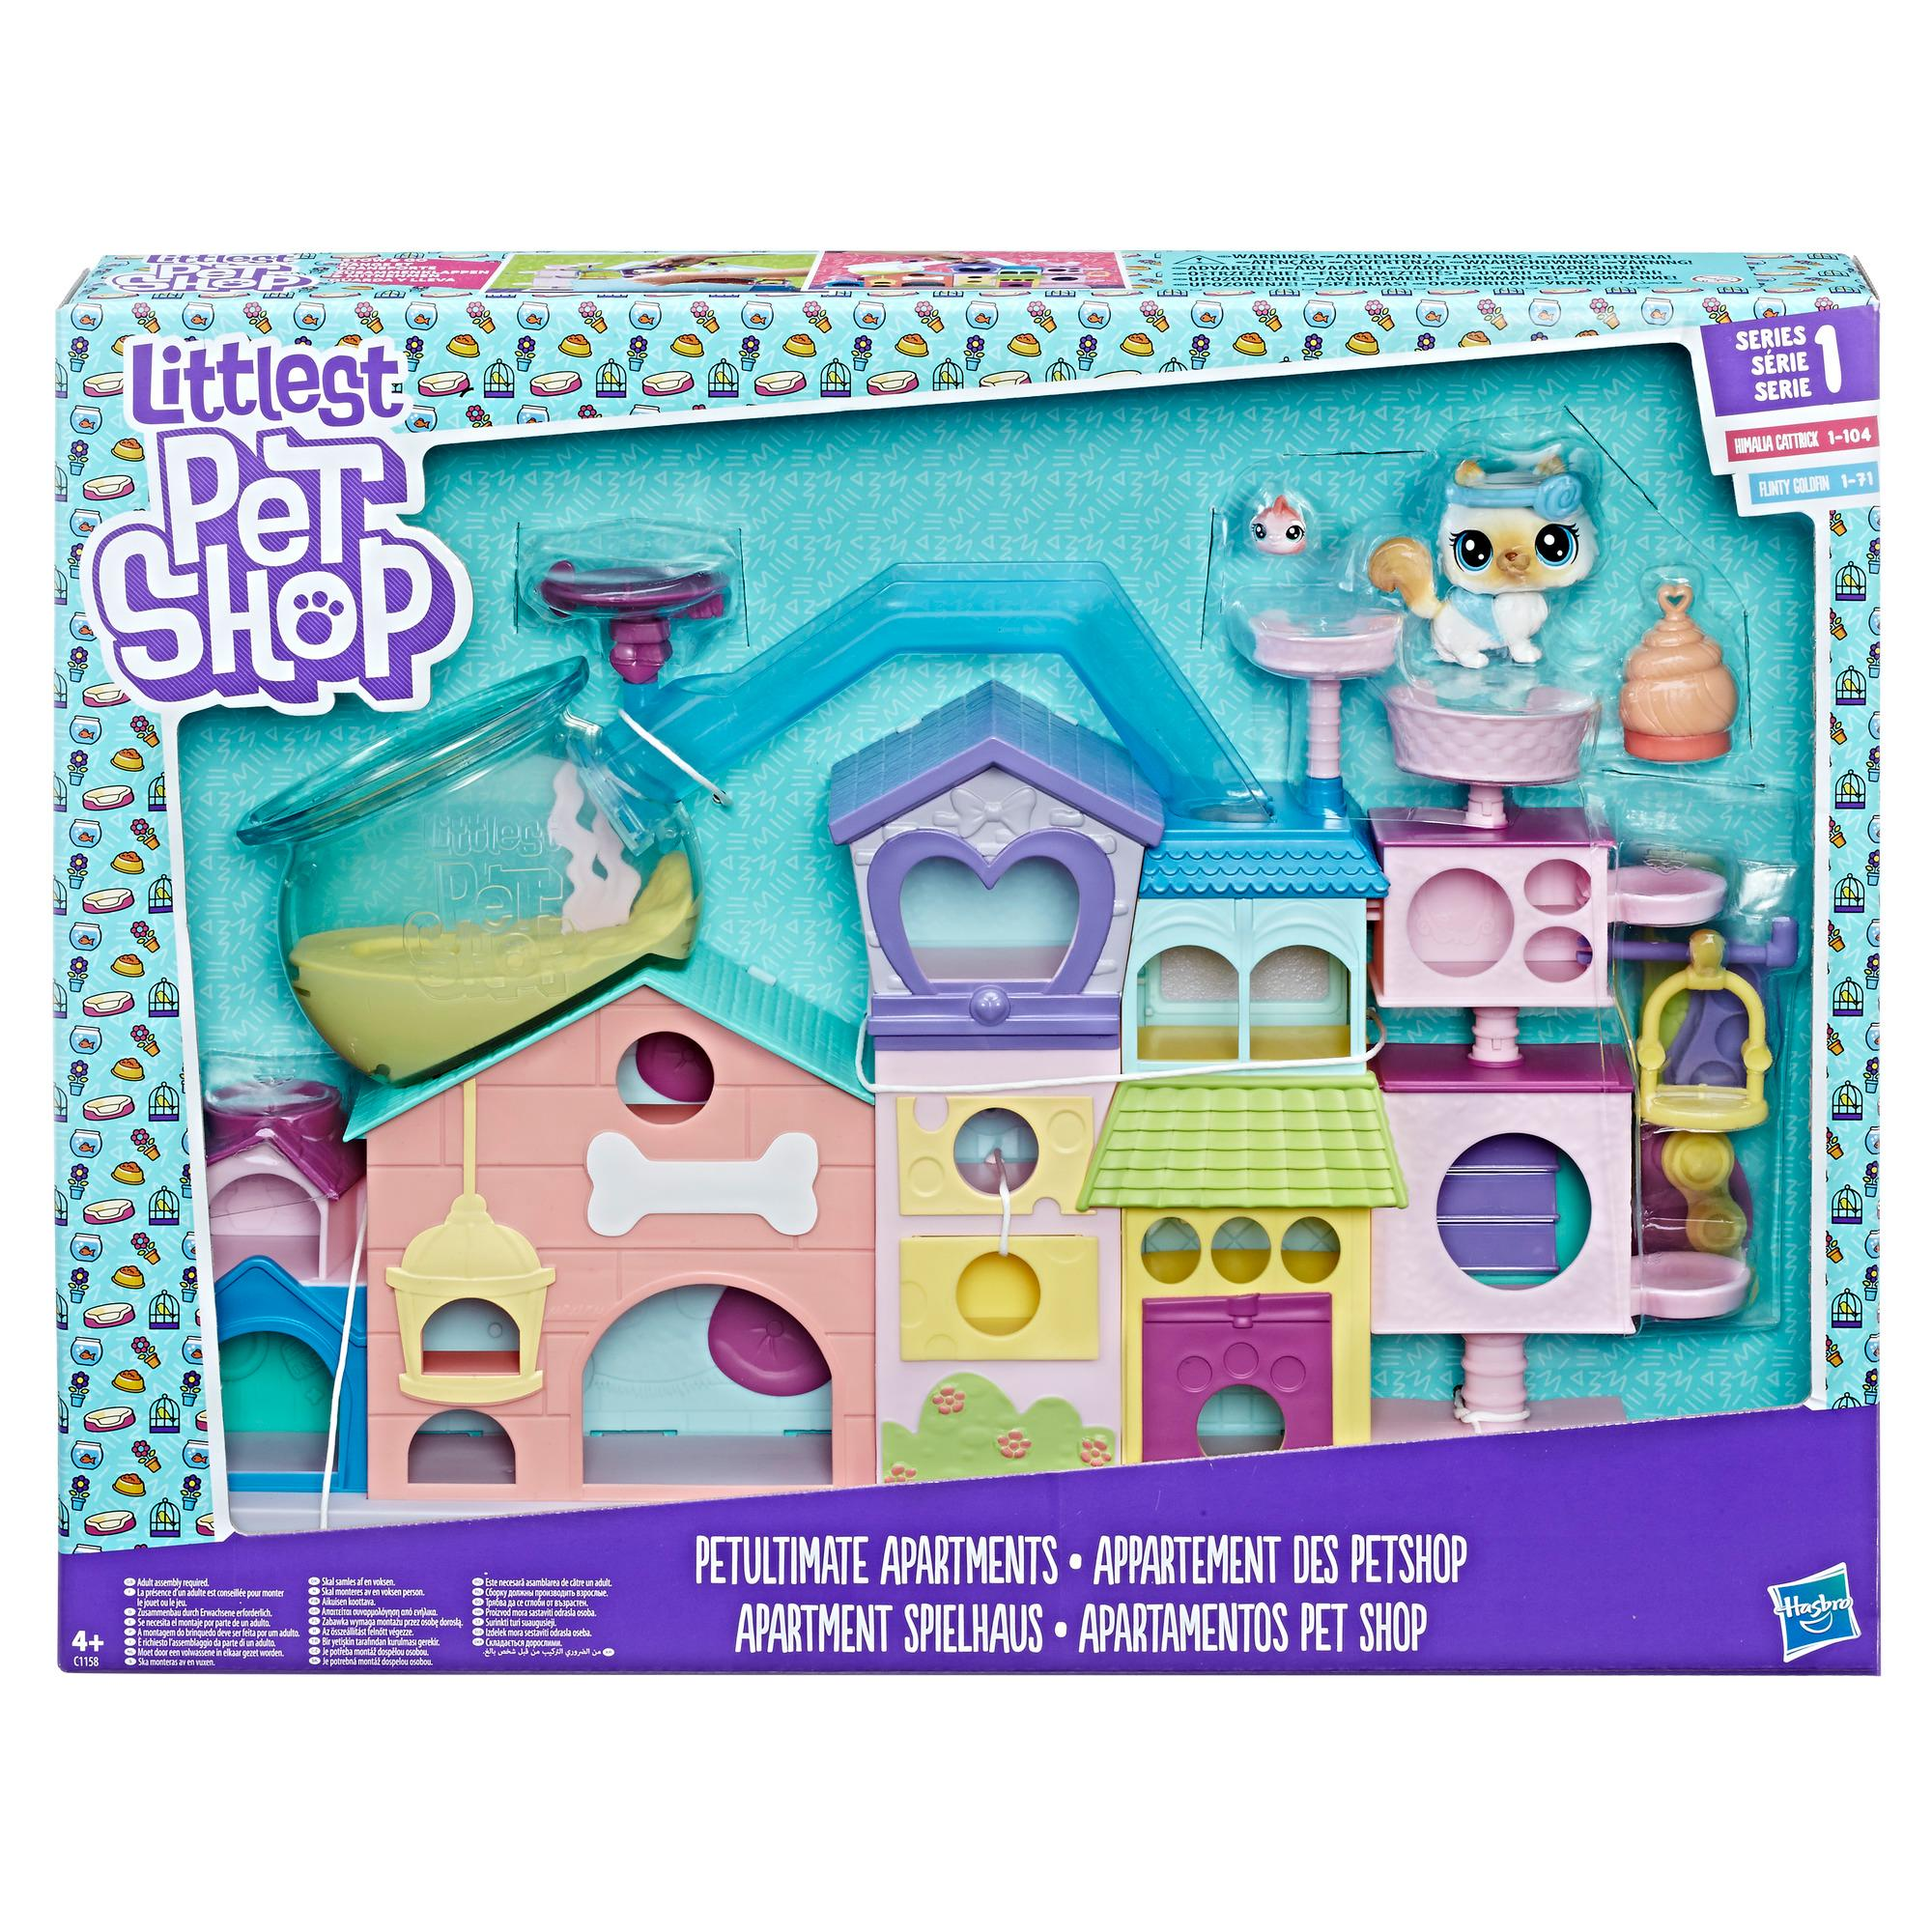 Littlest Pet Shop Coloring pages. Select from printable Coloring pages of cartoons, animals, nature, Bible and many more.